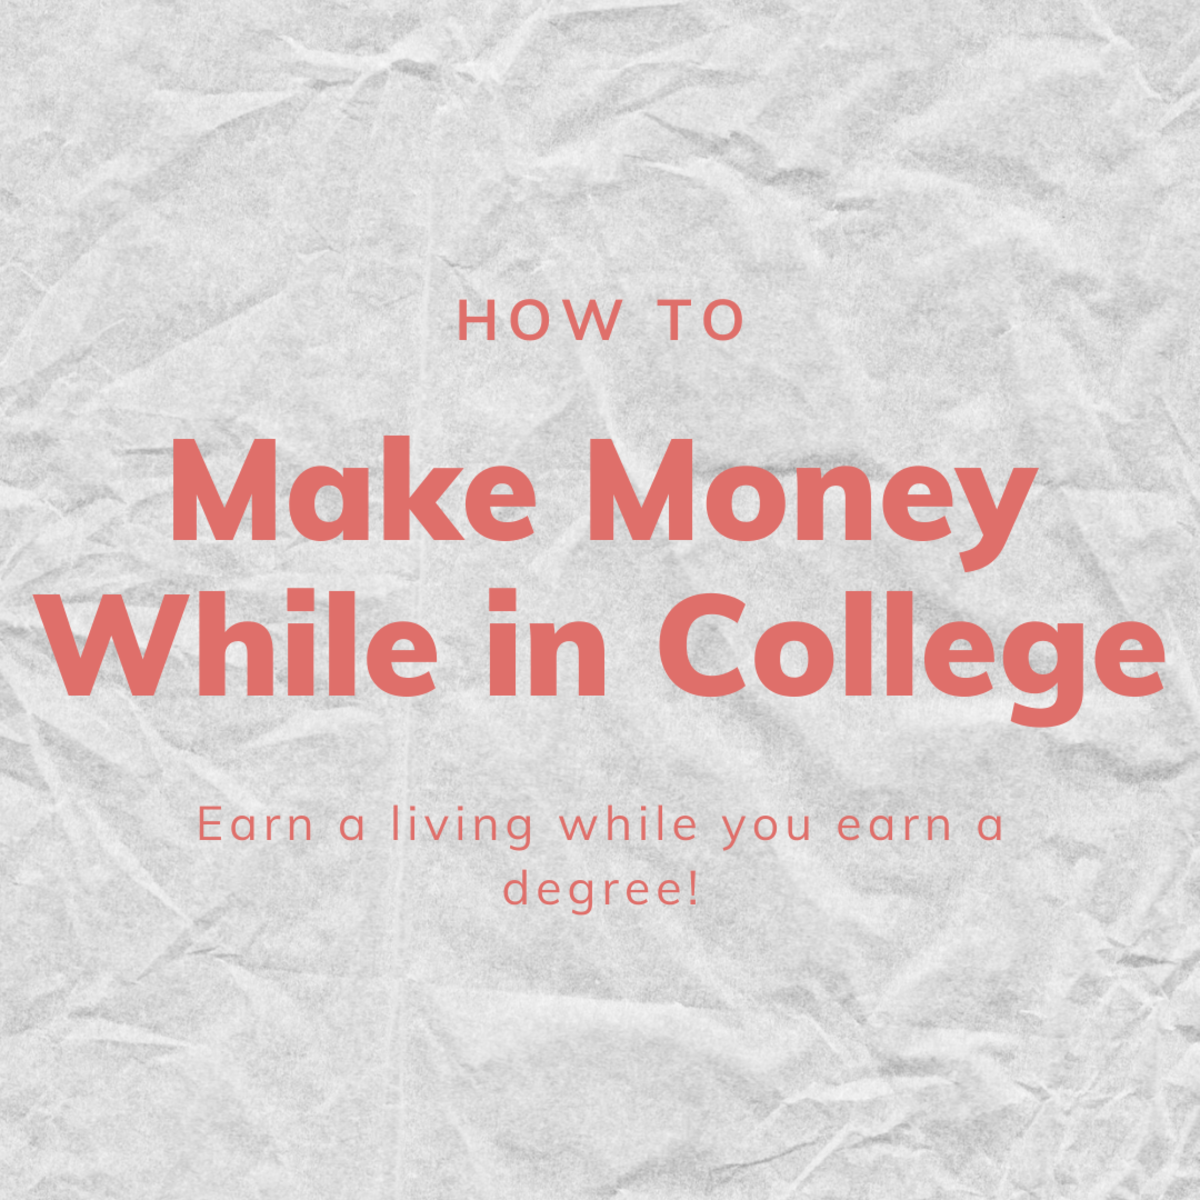 Read on to learn how earn money while you earn a degree.